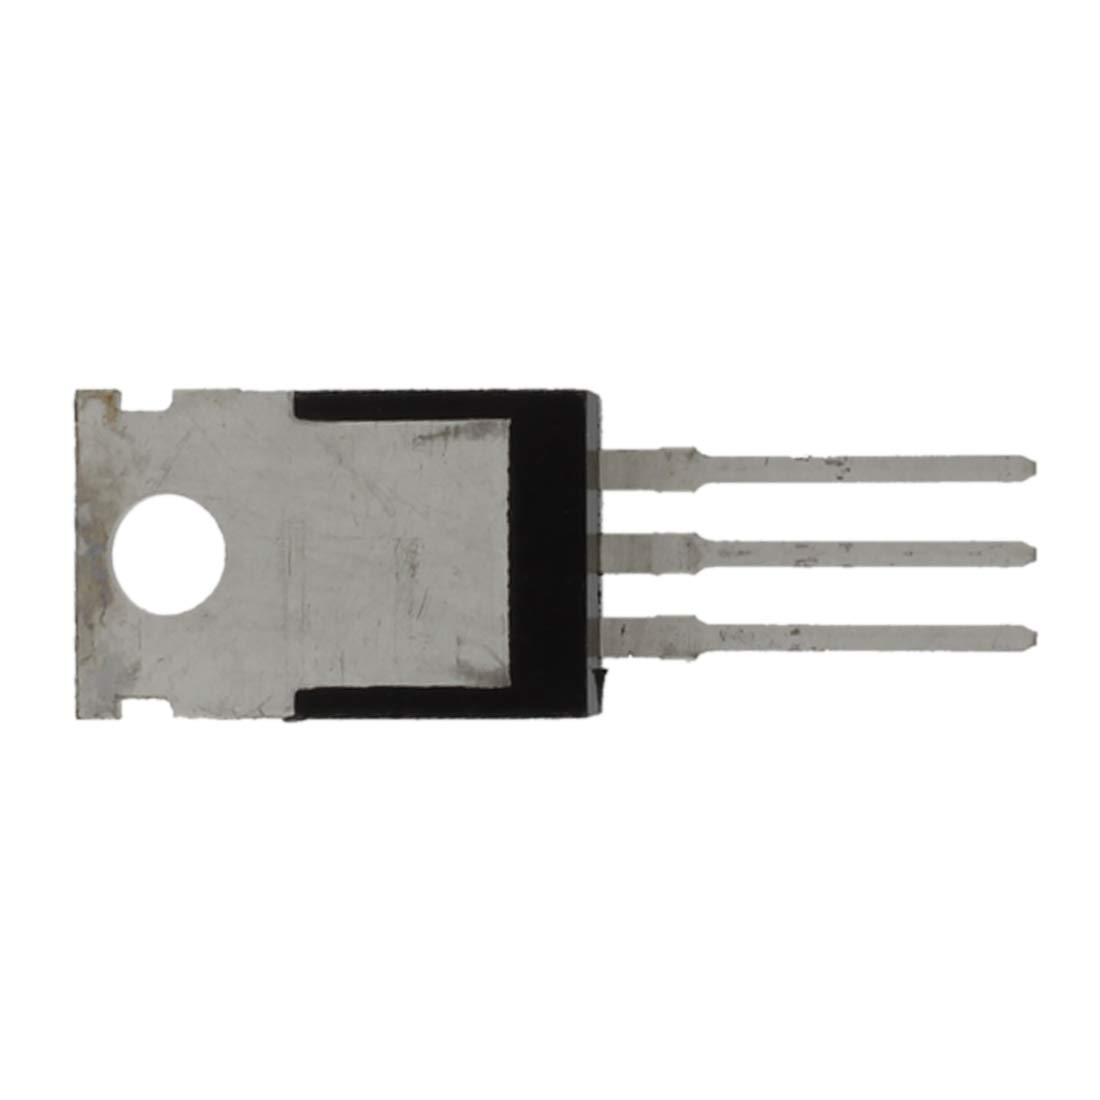 XZANTE 10pc IRF3205 IRF3205PBF Fast Switching Power Mosfet Transistor//N Channel T0220